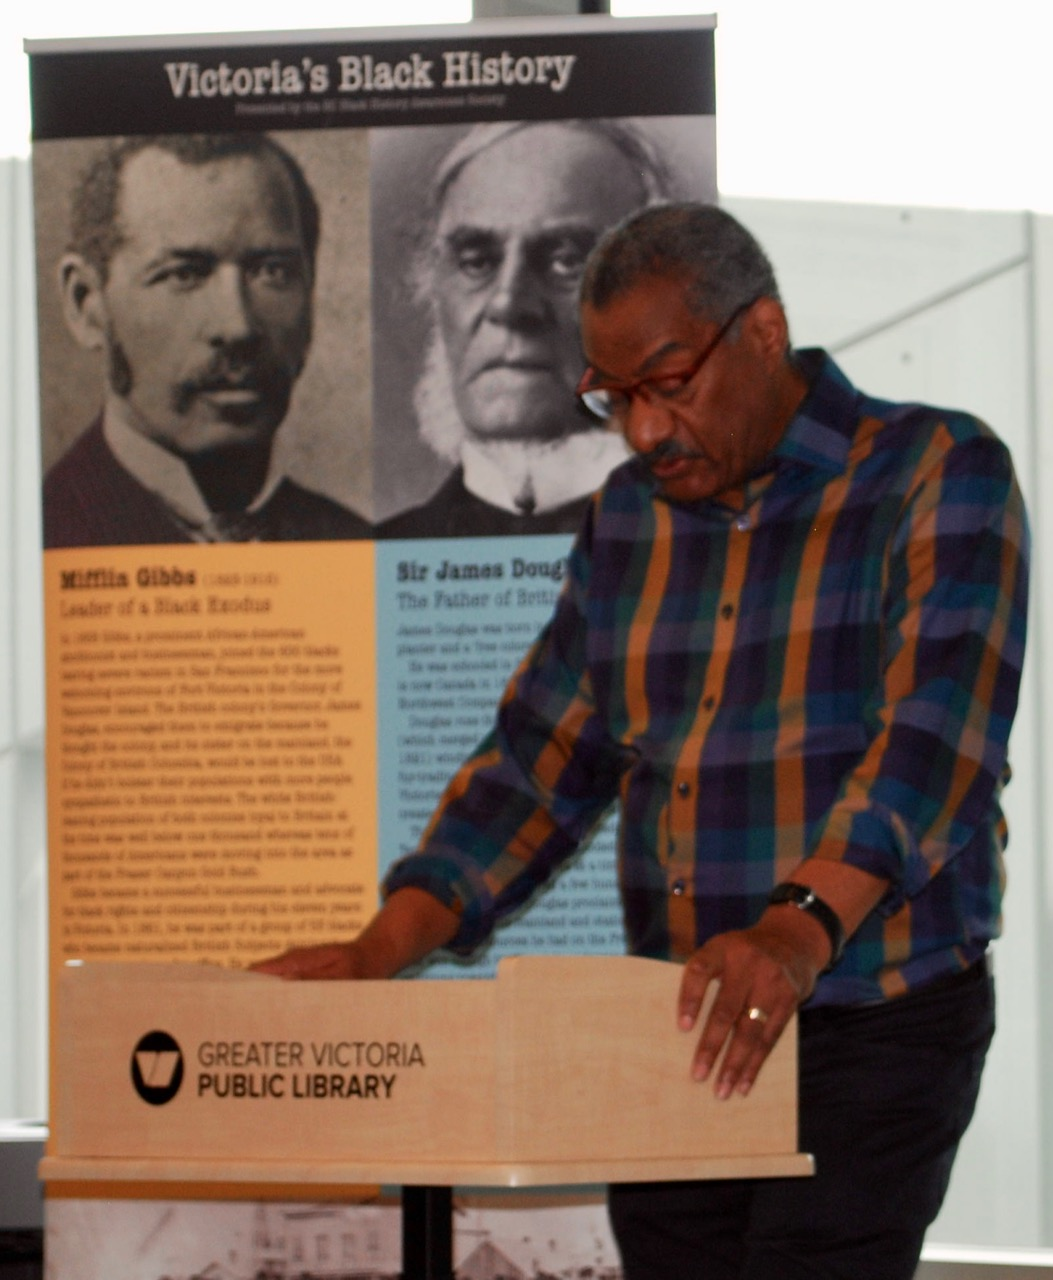 BC Black History Awareness Director Ron Nicholson speaks of the historical importance of Mifflin Wistar Gibbs. Photo by Robert Hawkes.